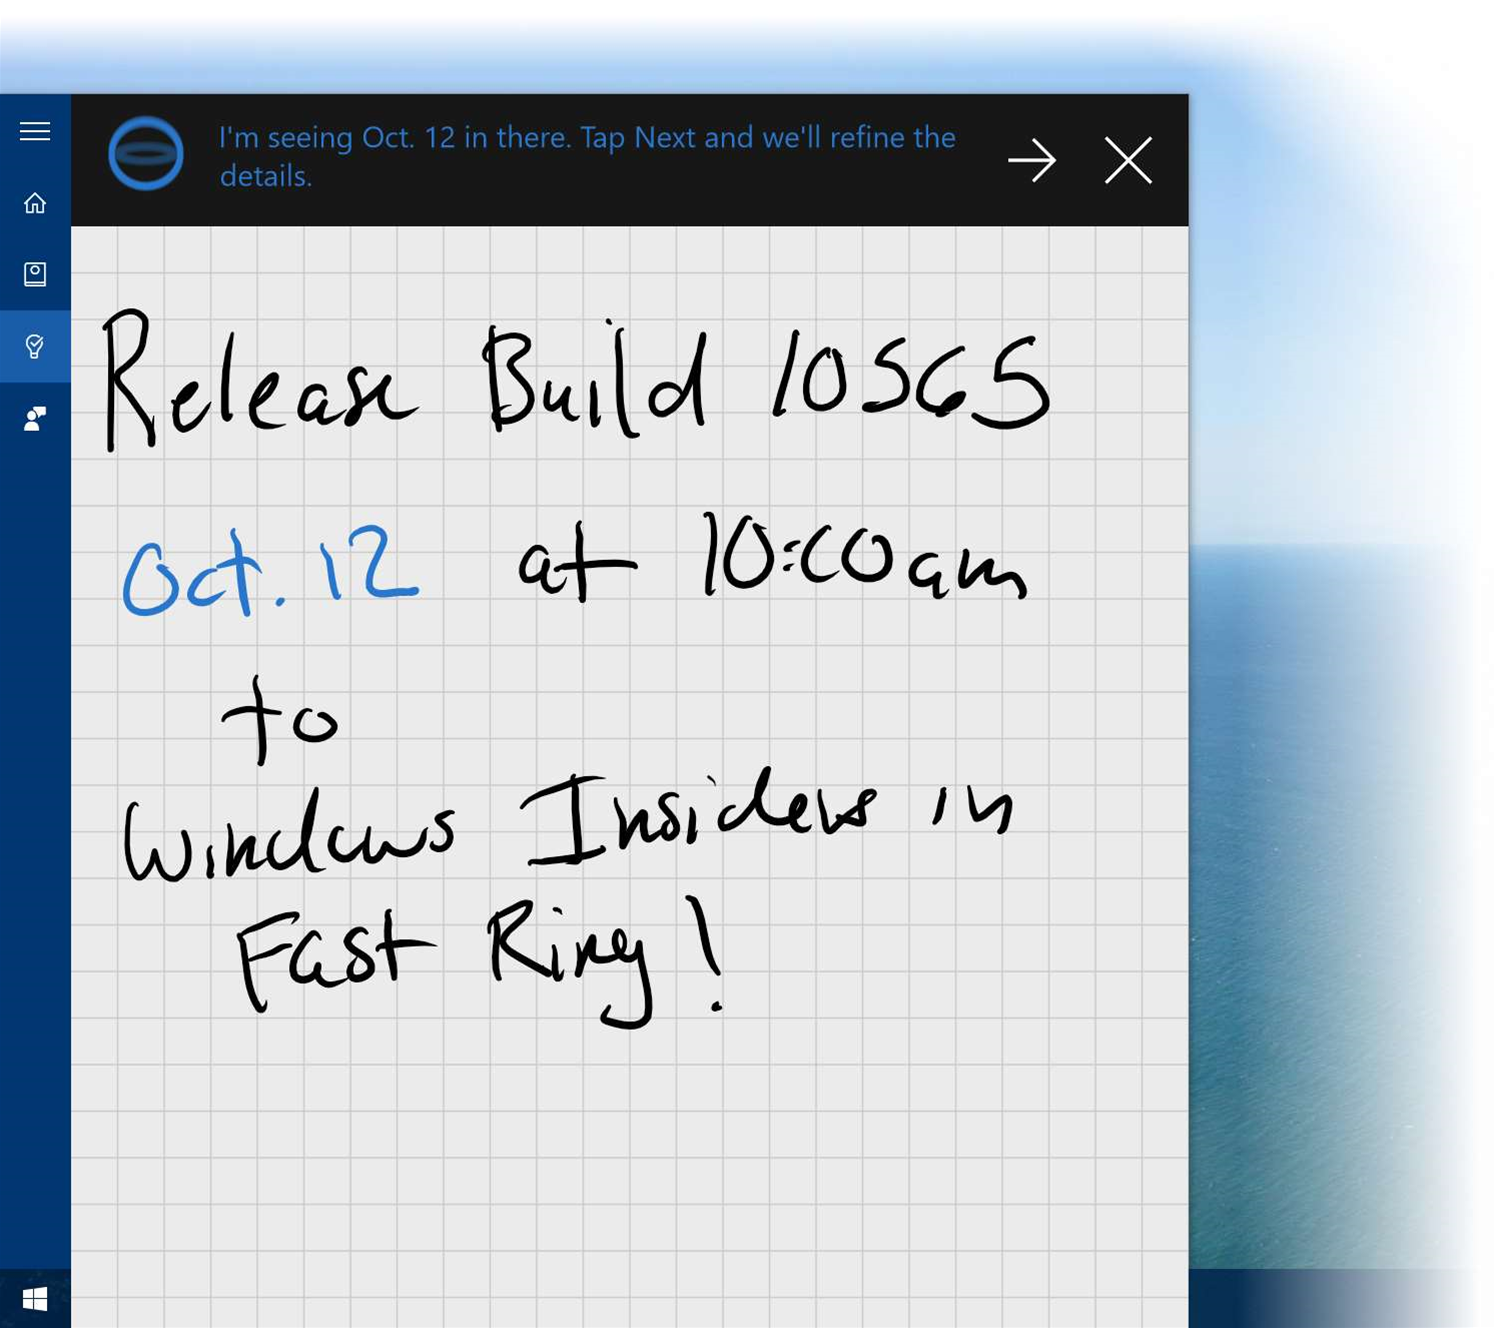 Win10 new build integrates Skype, shows off UI tweaks